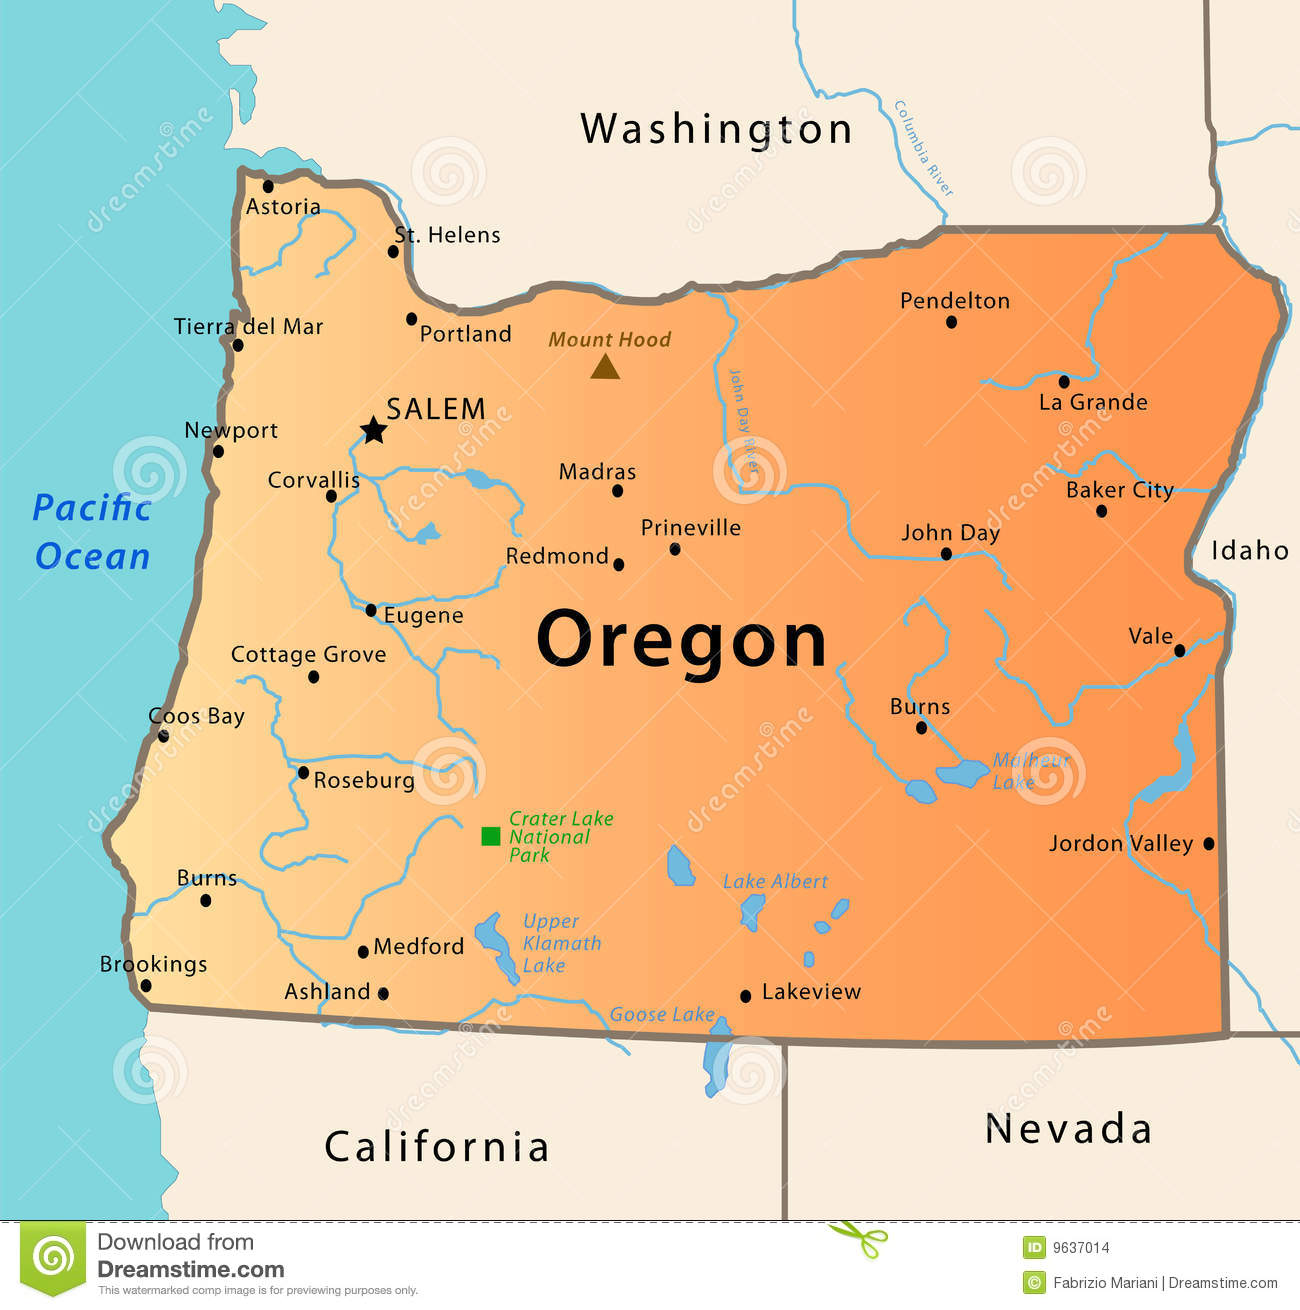 http://thumbs.dreamstime.com/z/mapa-oregon-9637014.jpg